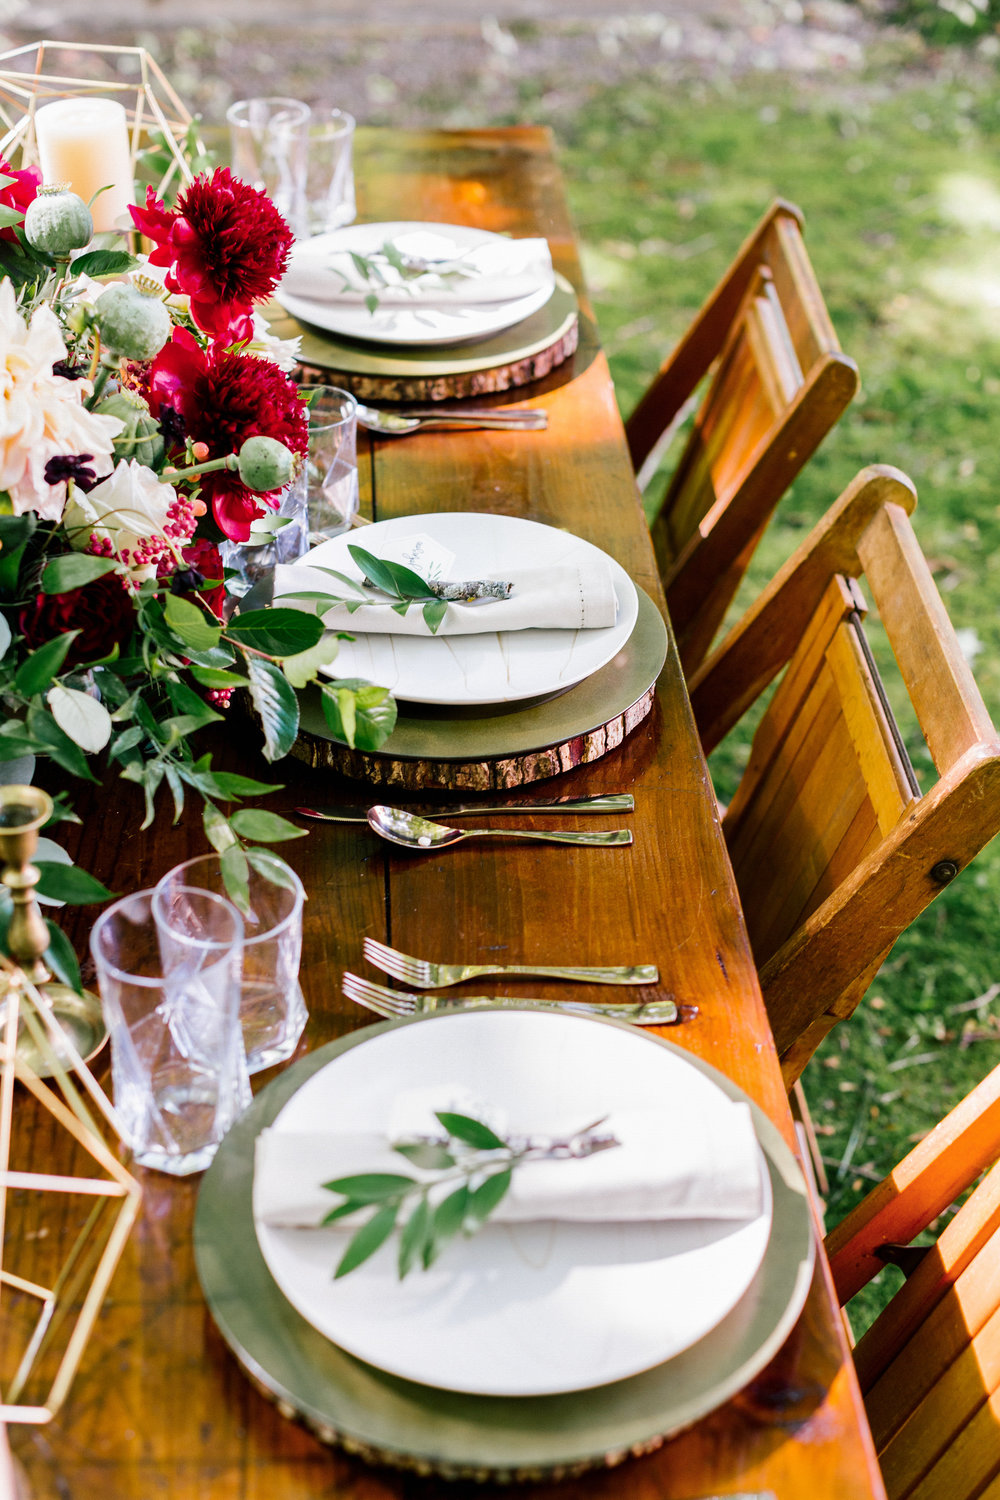 Allison_Hopperstad_Photography_Acowsay_Wedding_table.JPG